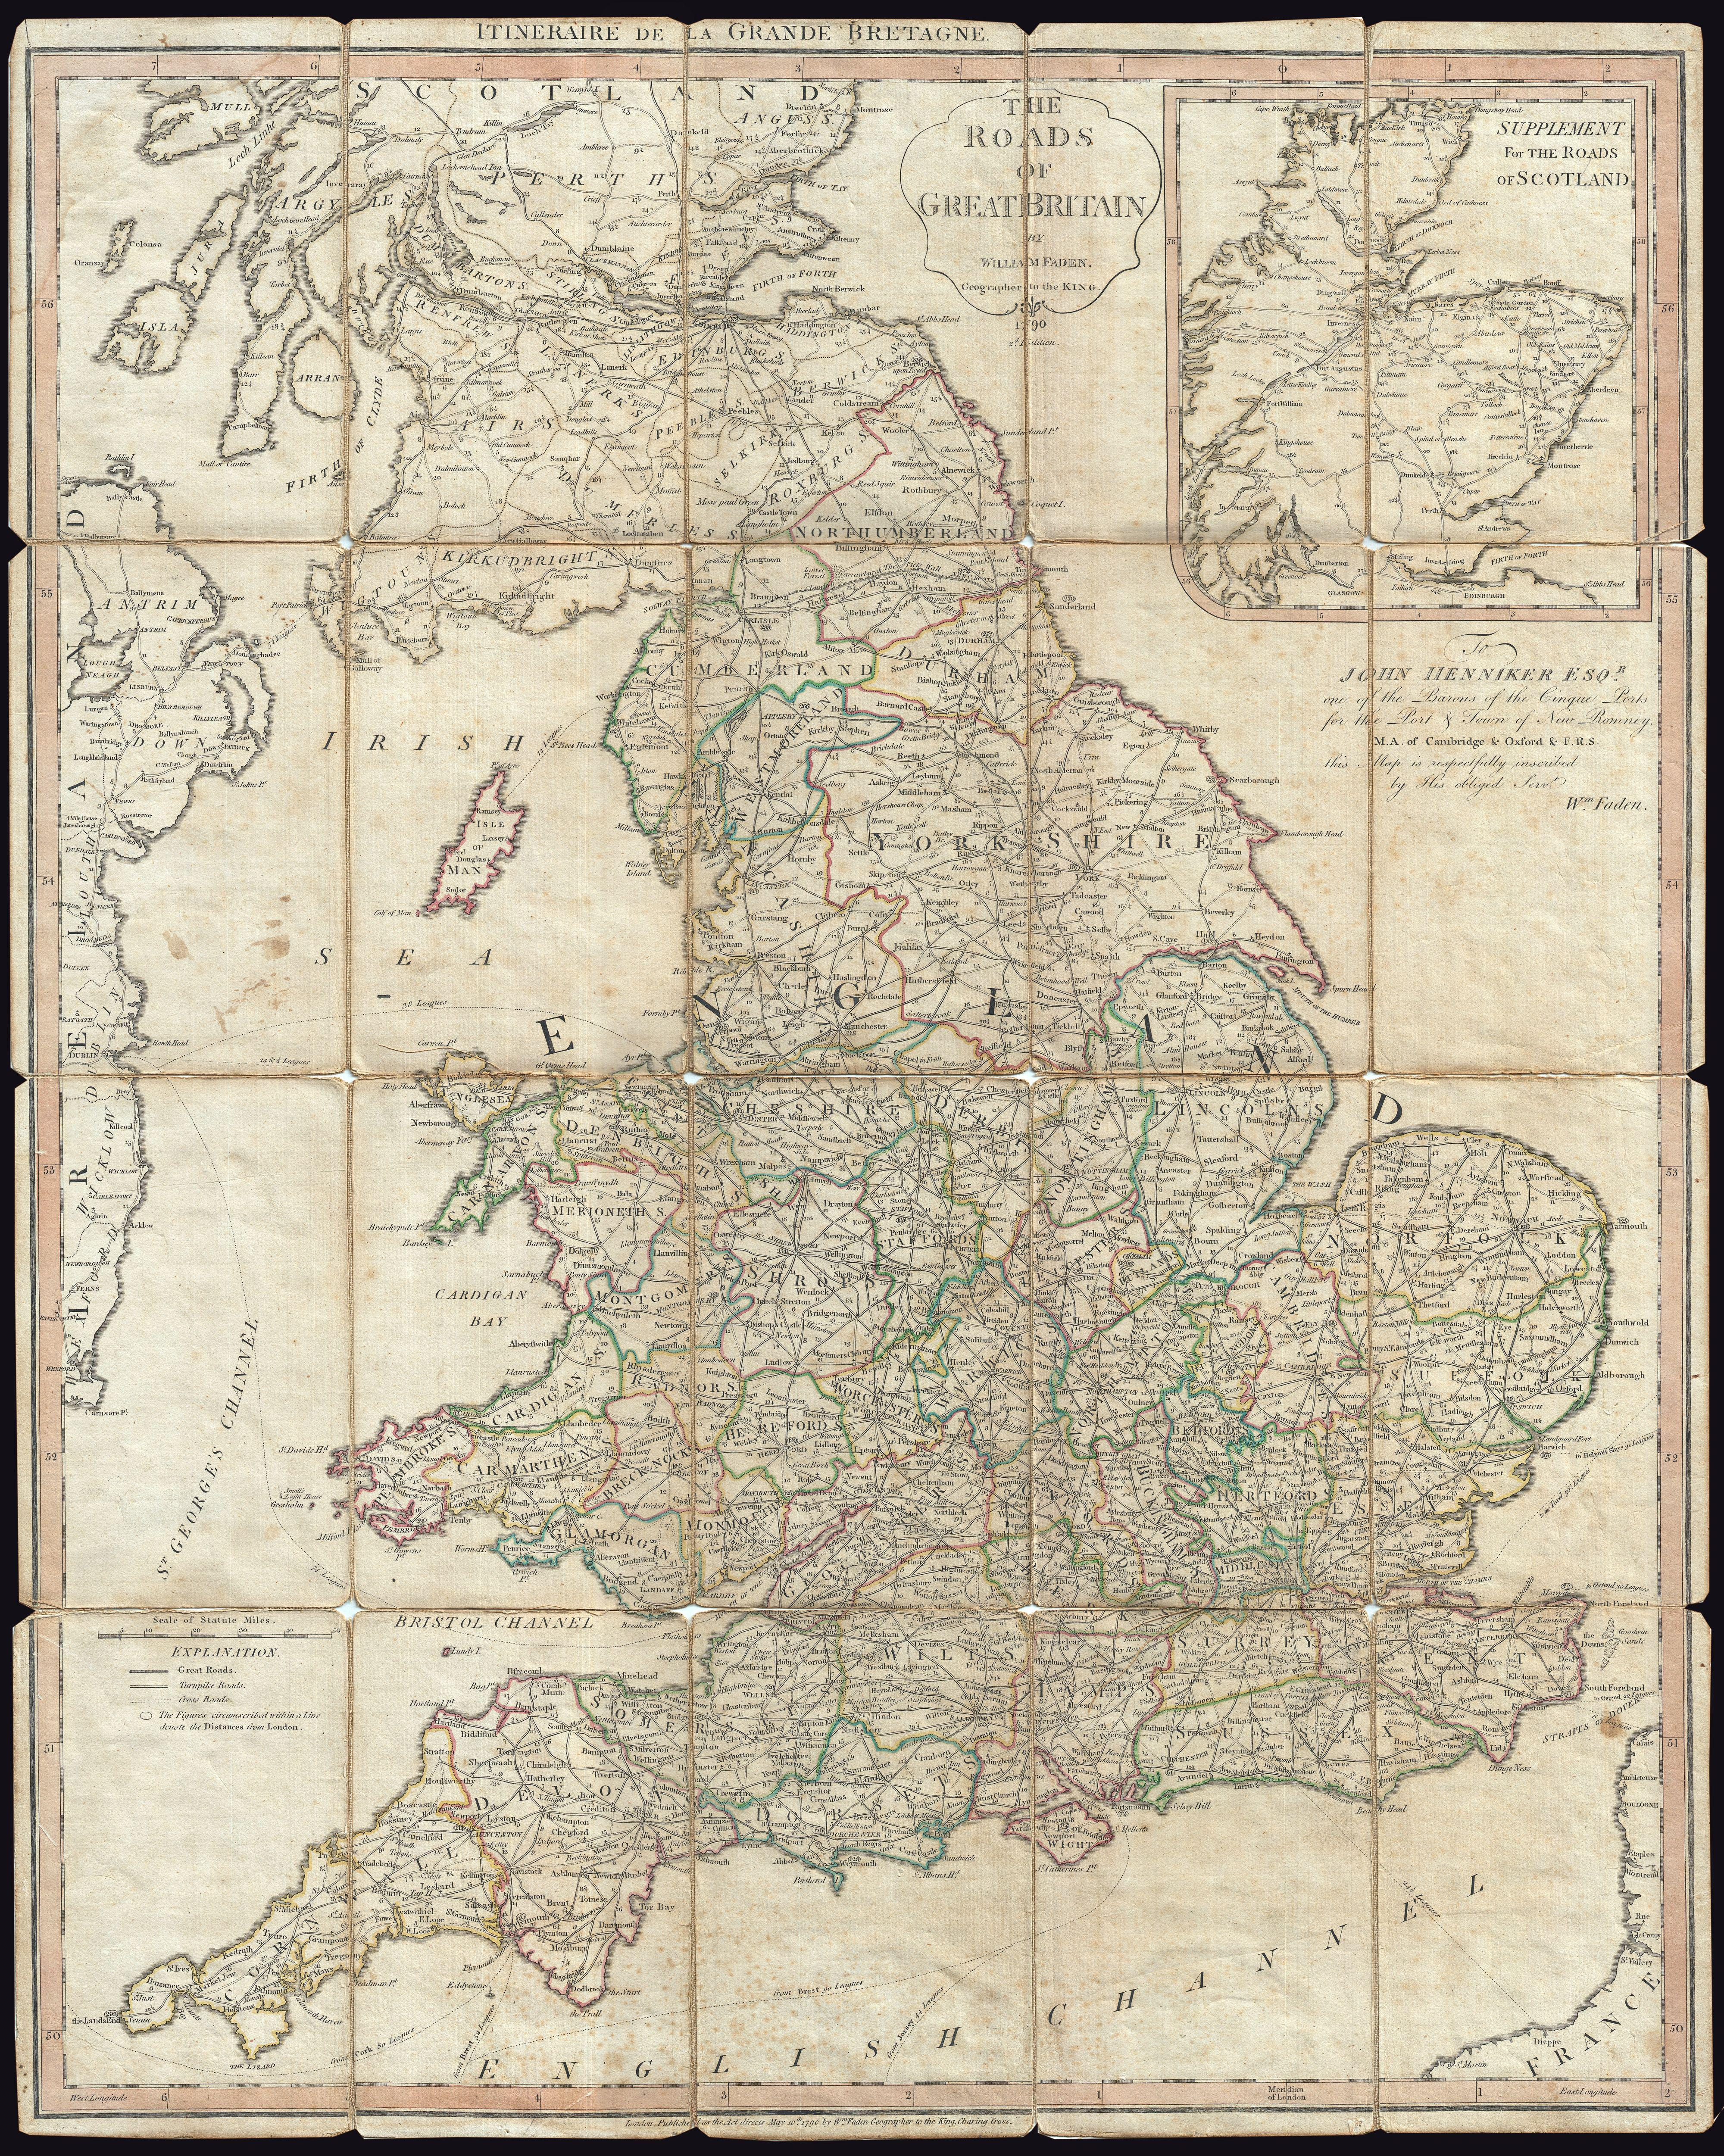 1790 in Great Britain